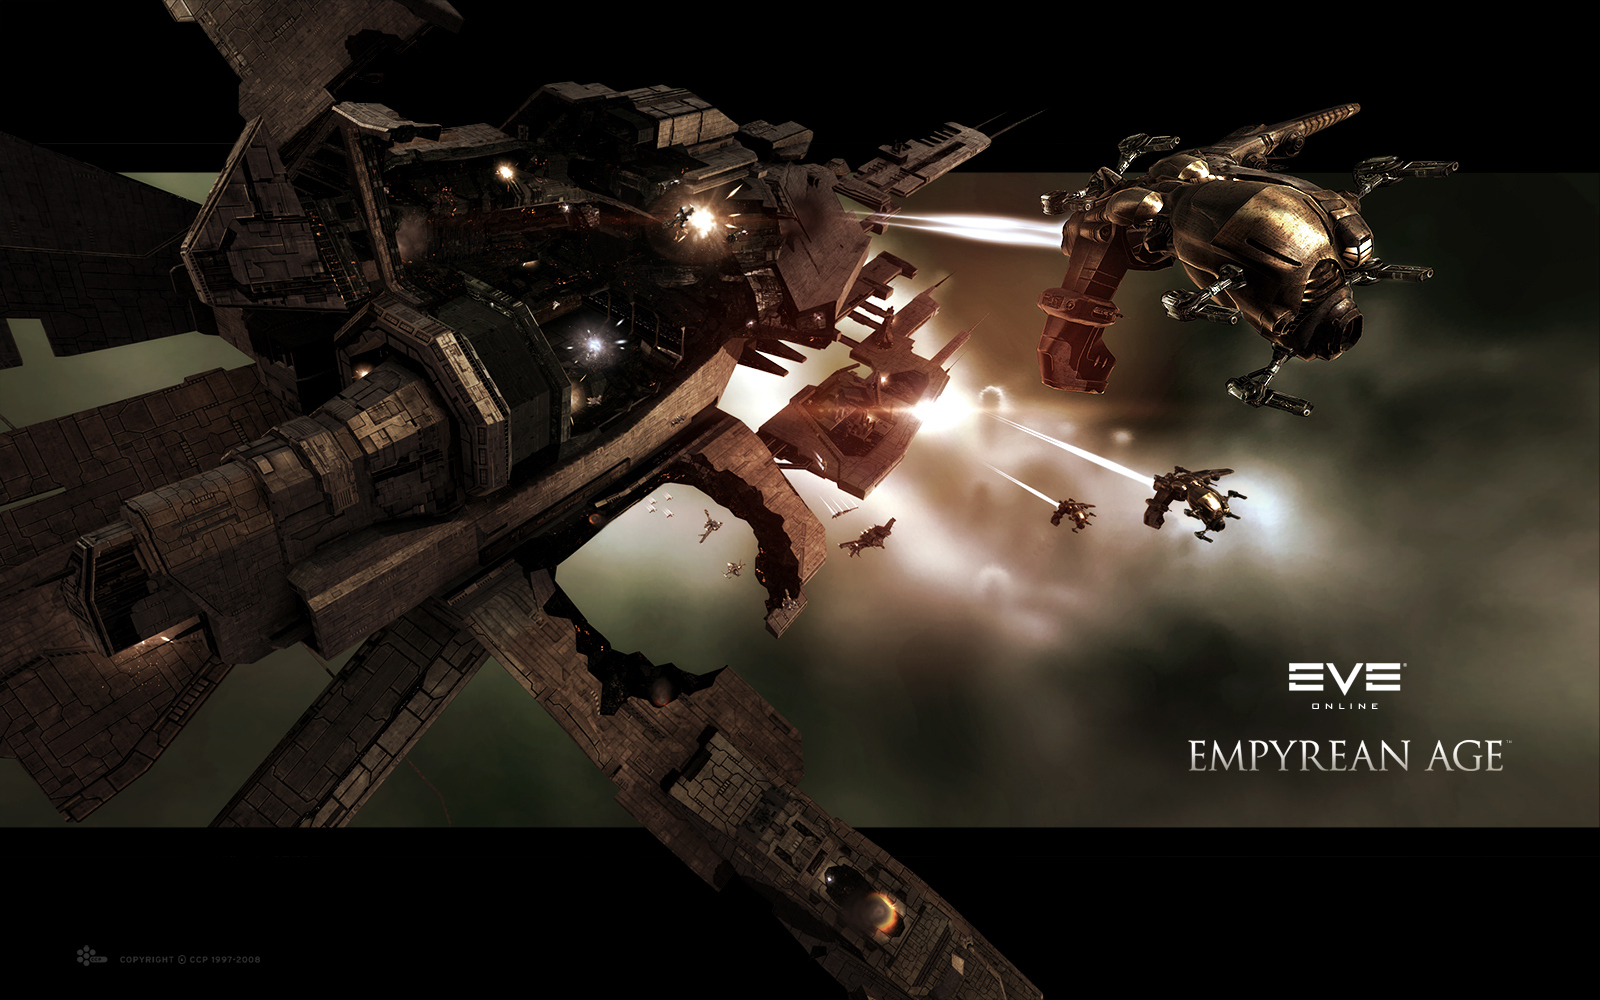 EVE ONLINE: EMPYREAN AGE - WALLPAPERS